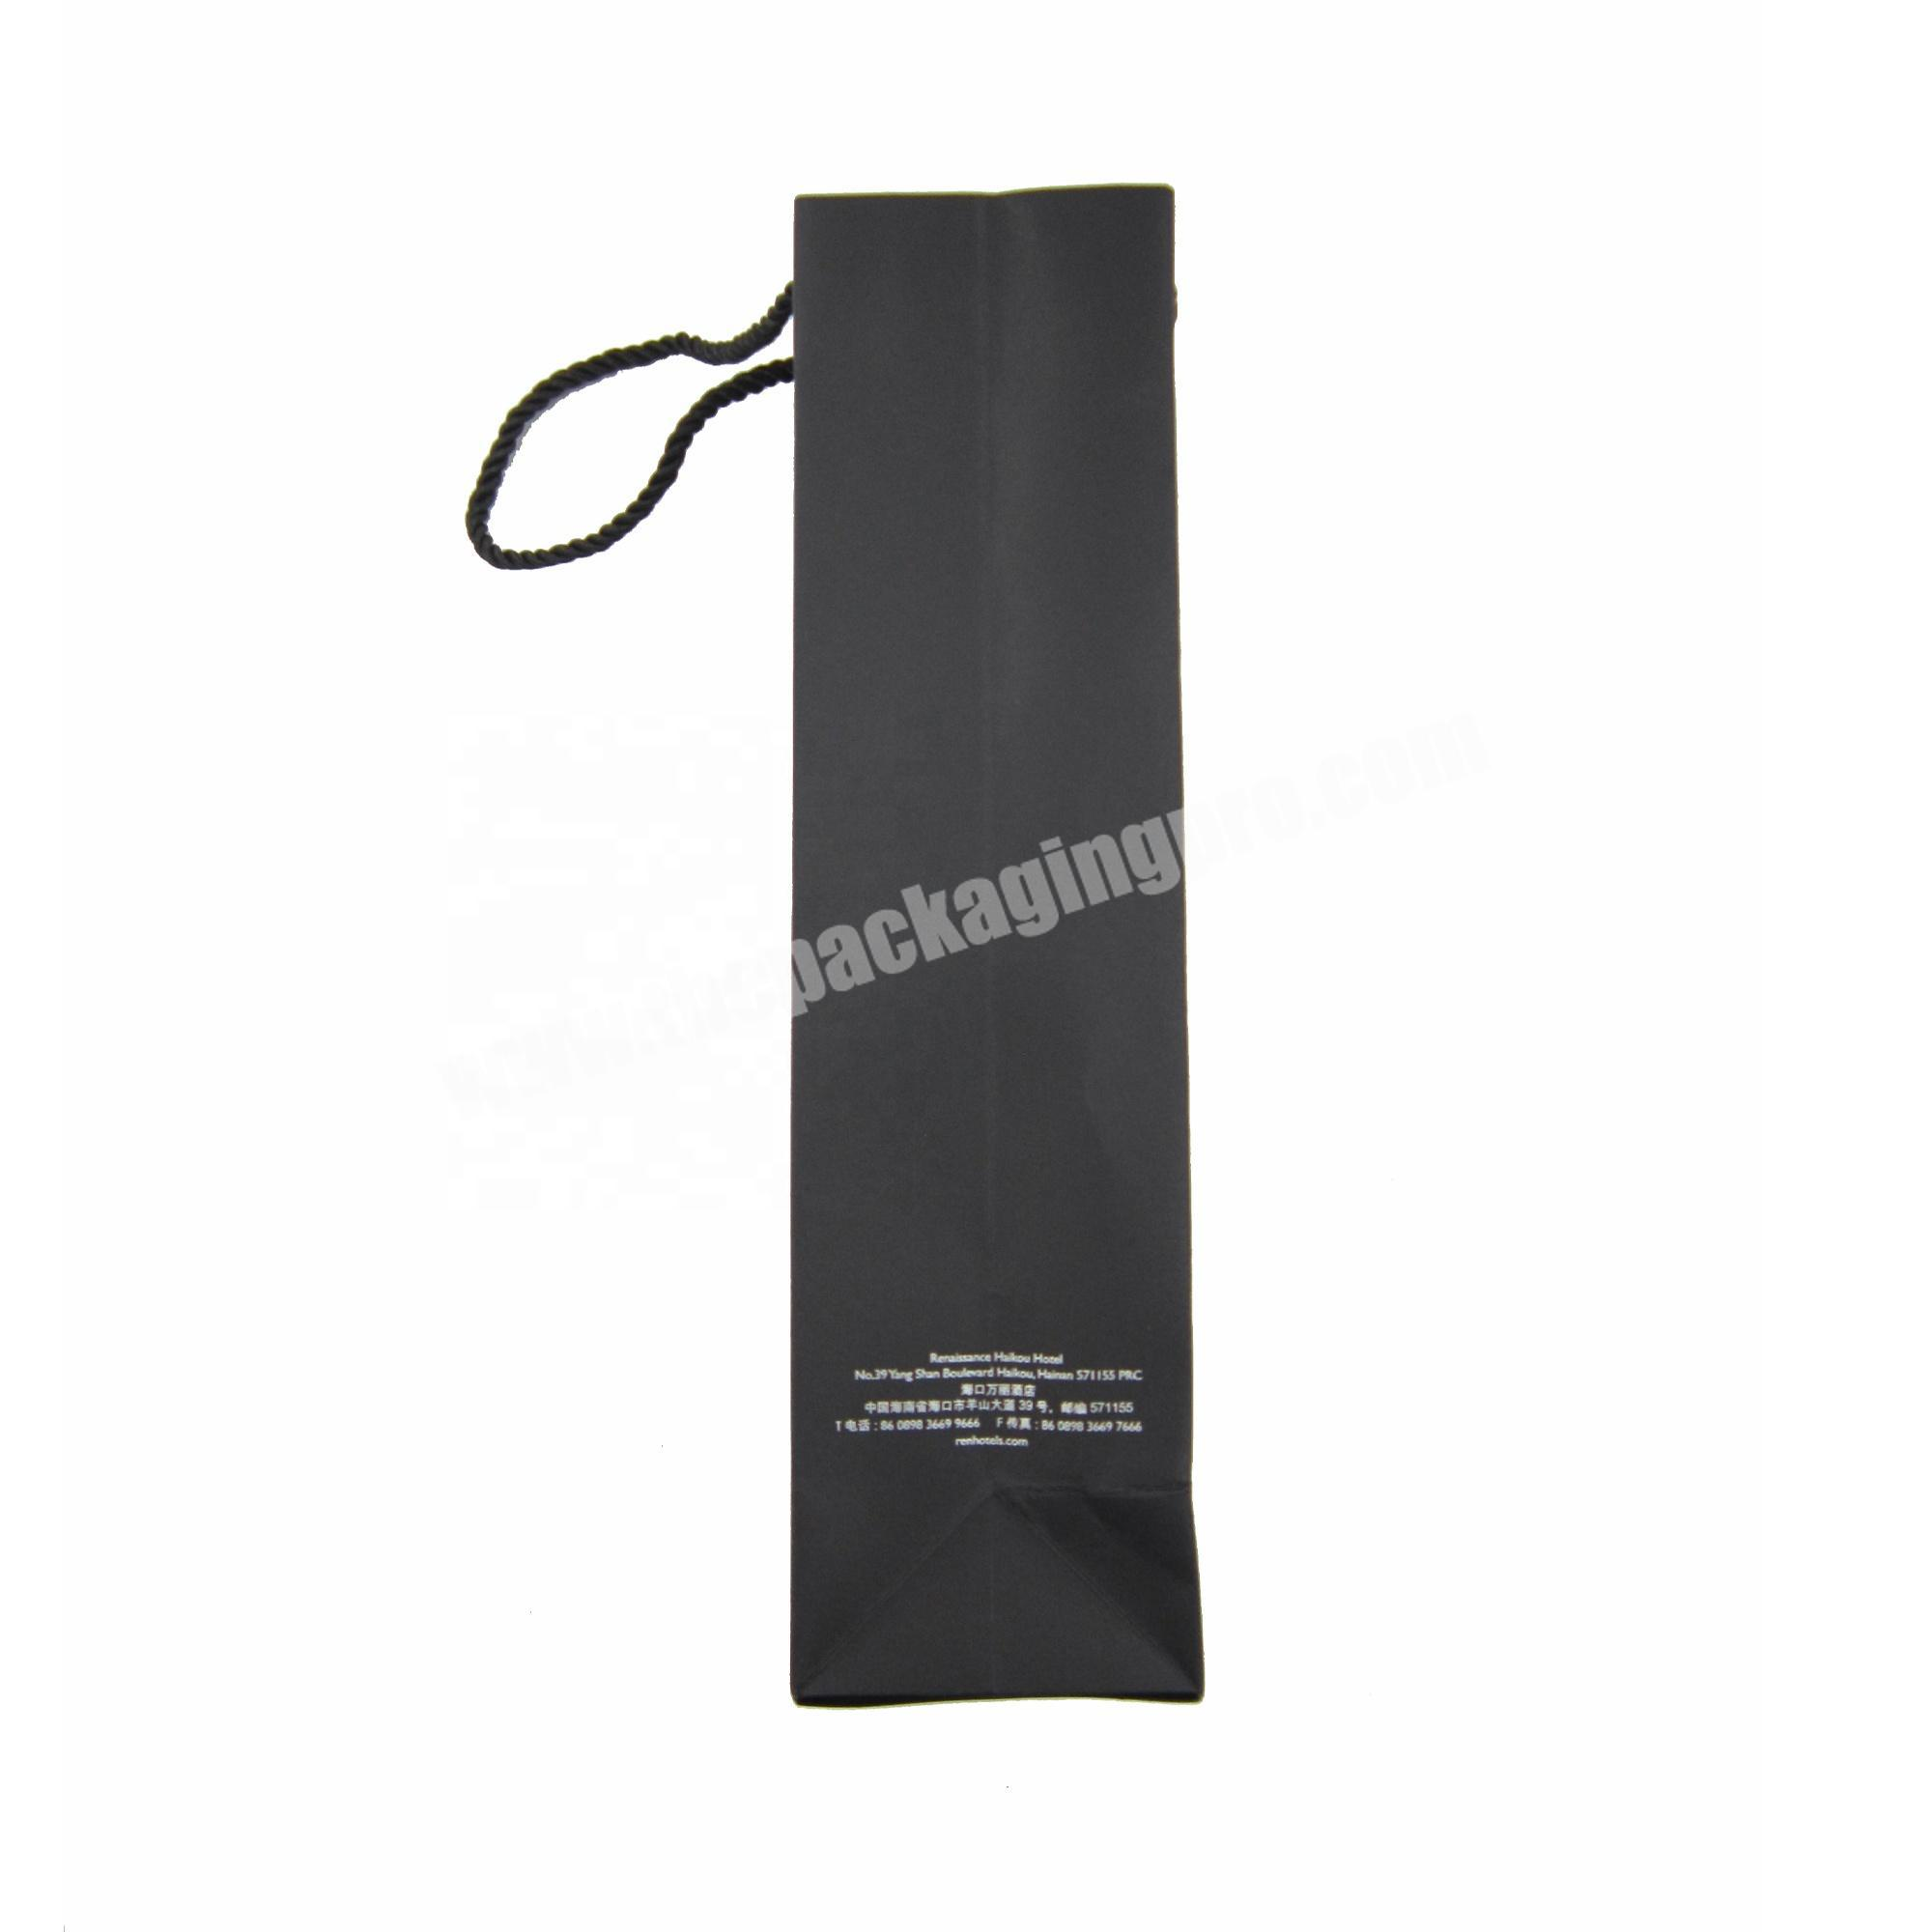 Small Gloss Craft Paper Bags Black Retail Shopping Paper Bag